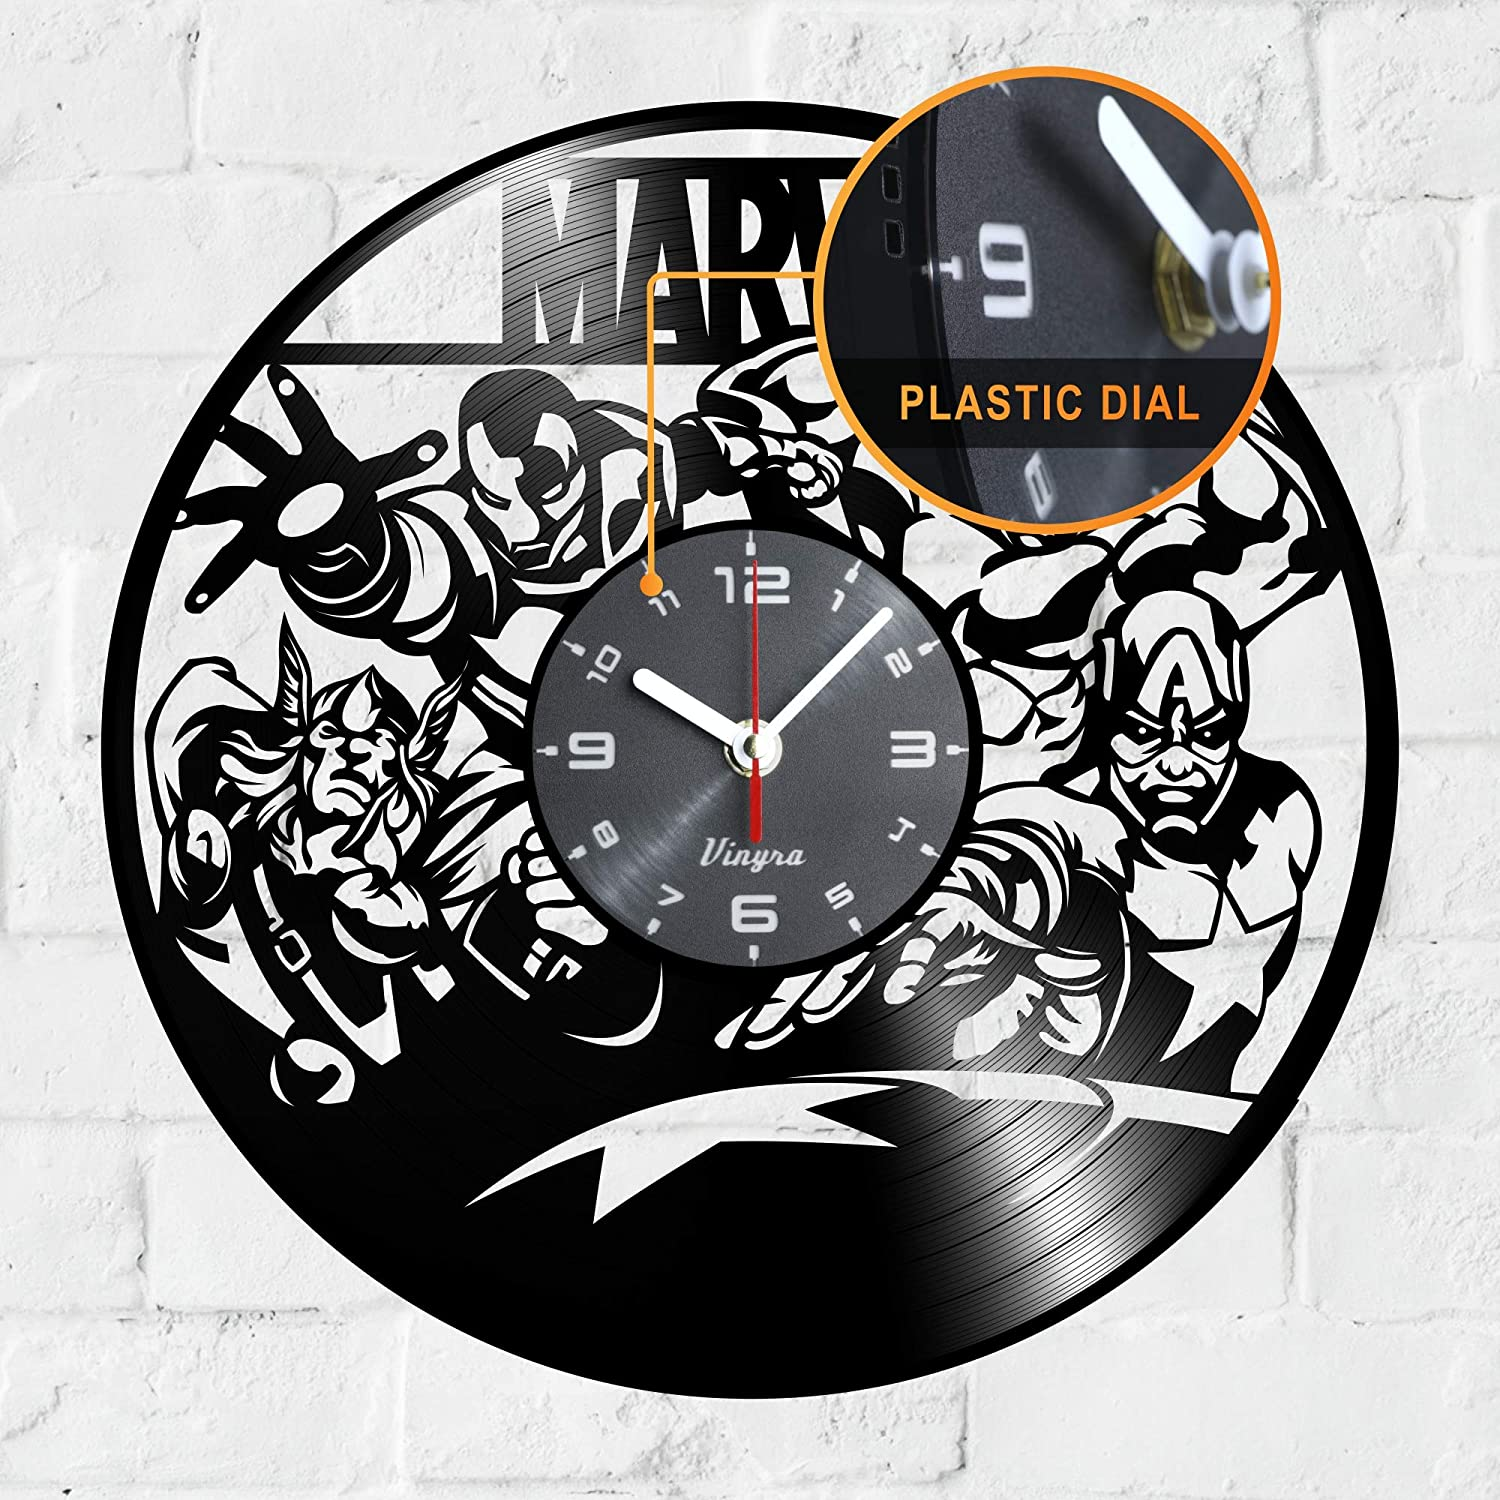 "Vinyra Vinyl Wall Clock compatible with Marvel Avengers Iron Man Captain America Thor Hulk Themed Home - Gift Set Idea for Adults, Men, Women, Kids Teens Room Wall Art Vintage Decor 12"" LP Clock Black"